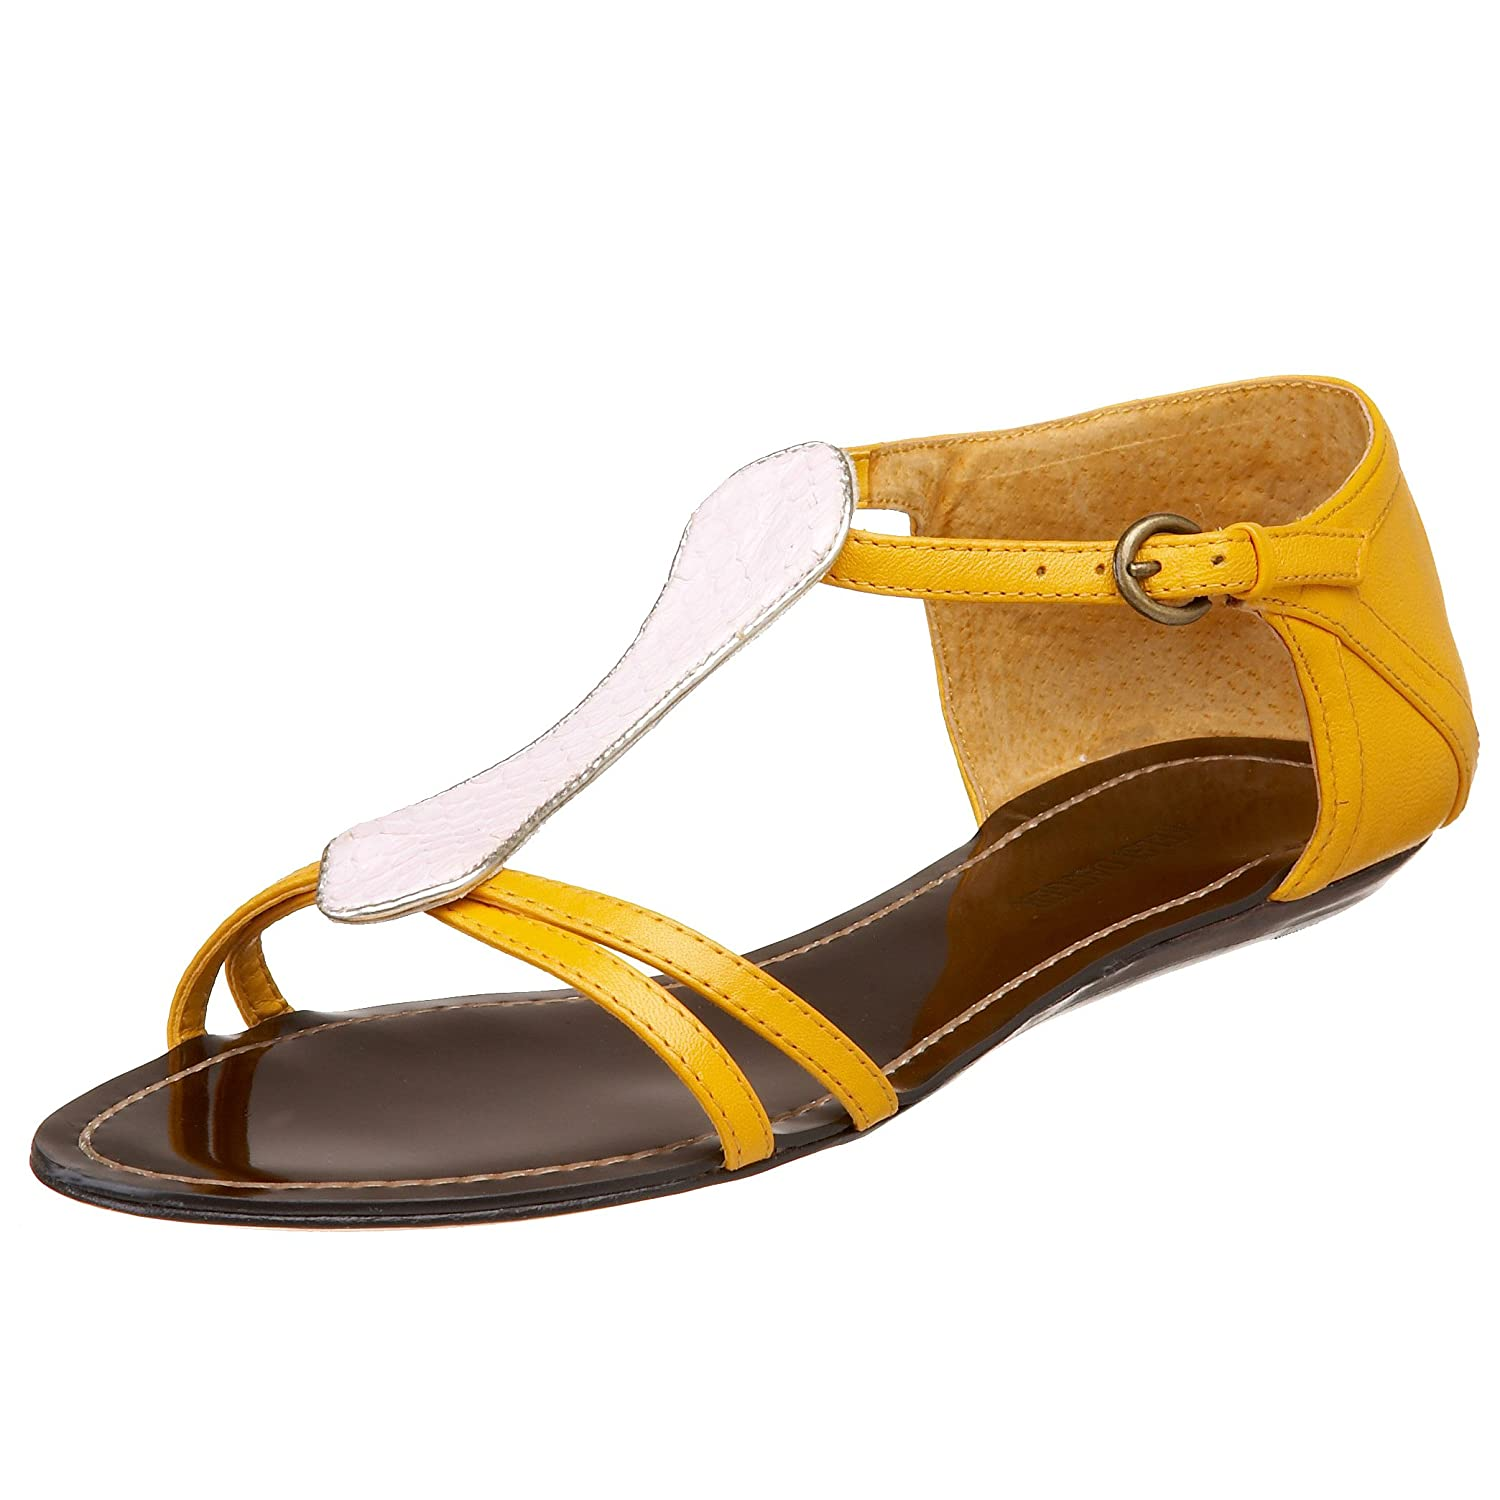 Kelsi Dagger Women s Cara T Strap Sandal Free Overnight Shipping Return Shipping Endless com from endless.com